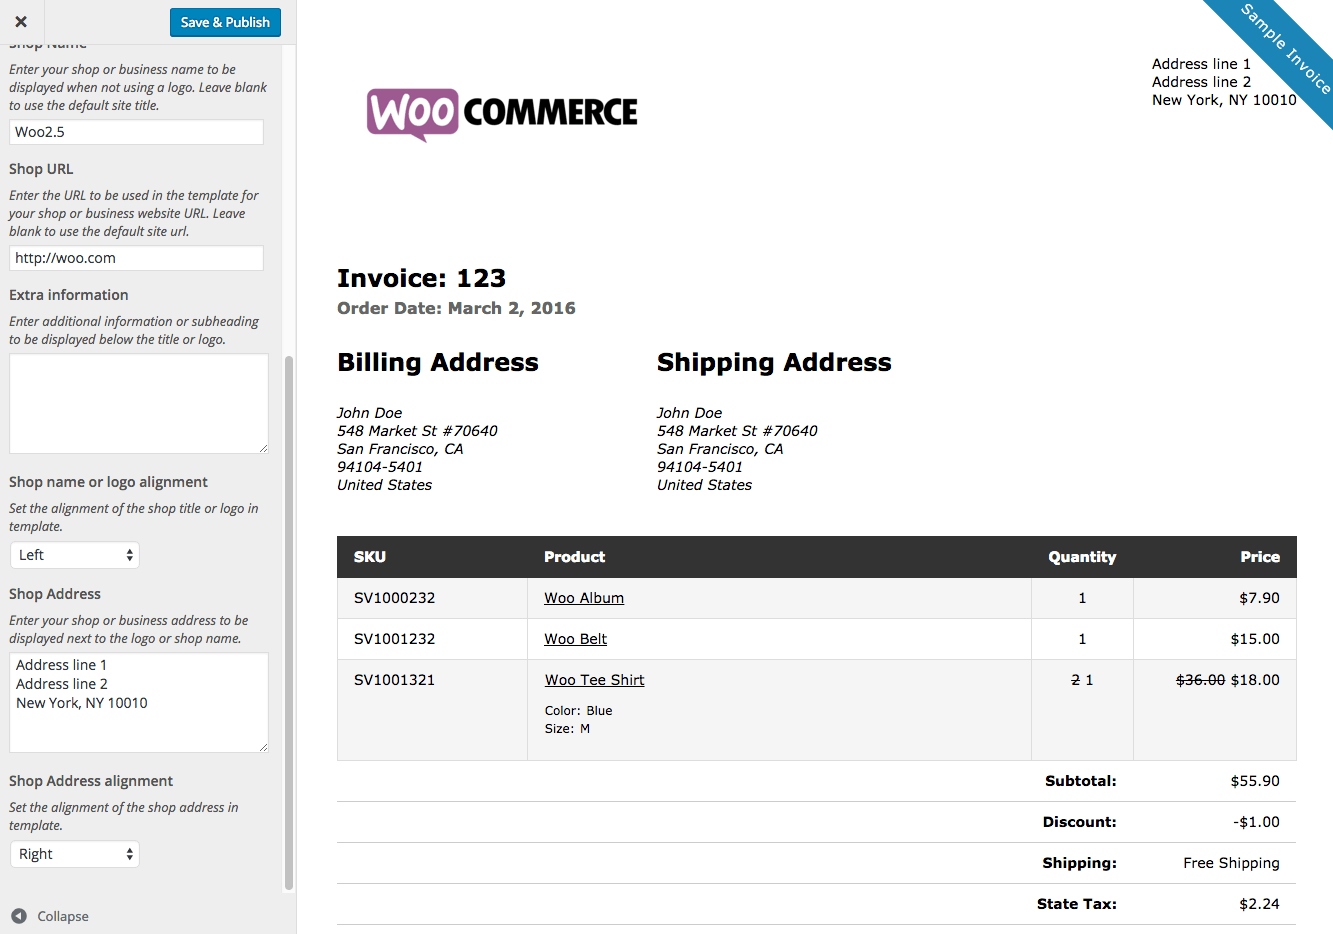 Hius  Wonderful Print Invoices Amp Packing Lists  Woocommerce With Remarkable Woocommerce Print Invoices  Packing Lists Customizer With Amusing Invoice Templates Download Also Free Invoicing Template In Addition Invoice Price Canada And Invoice Type As Well As Us Customs Invoice Form Additionally Logo Invoice From Woocommercecom With Hius  Remarkable Print Invoices Amp Packing Lists  Woocommerce With Amusing Woocommerce Print Invoices  Packing Lists Customizer And Wonderful Invoice Templates Download Also Free Invoicing Template In Addition Invoice Price Canada From Woocommercecom